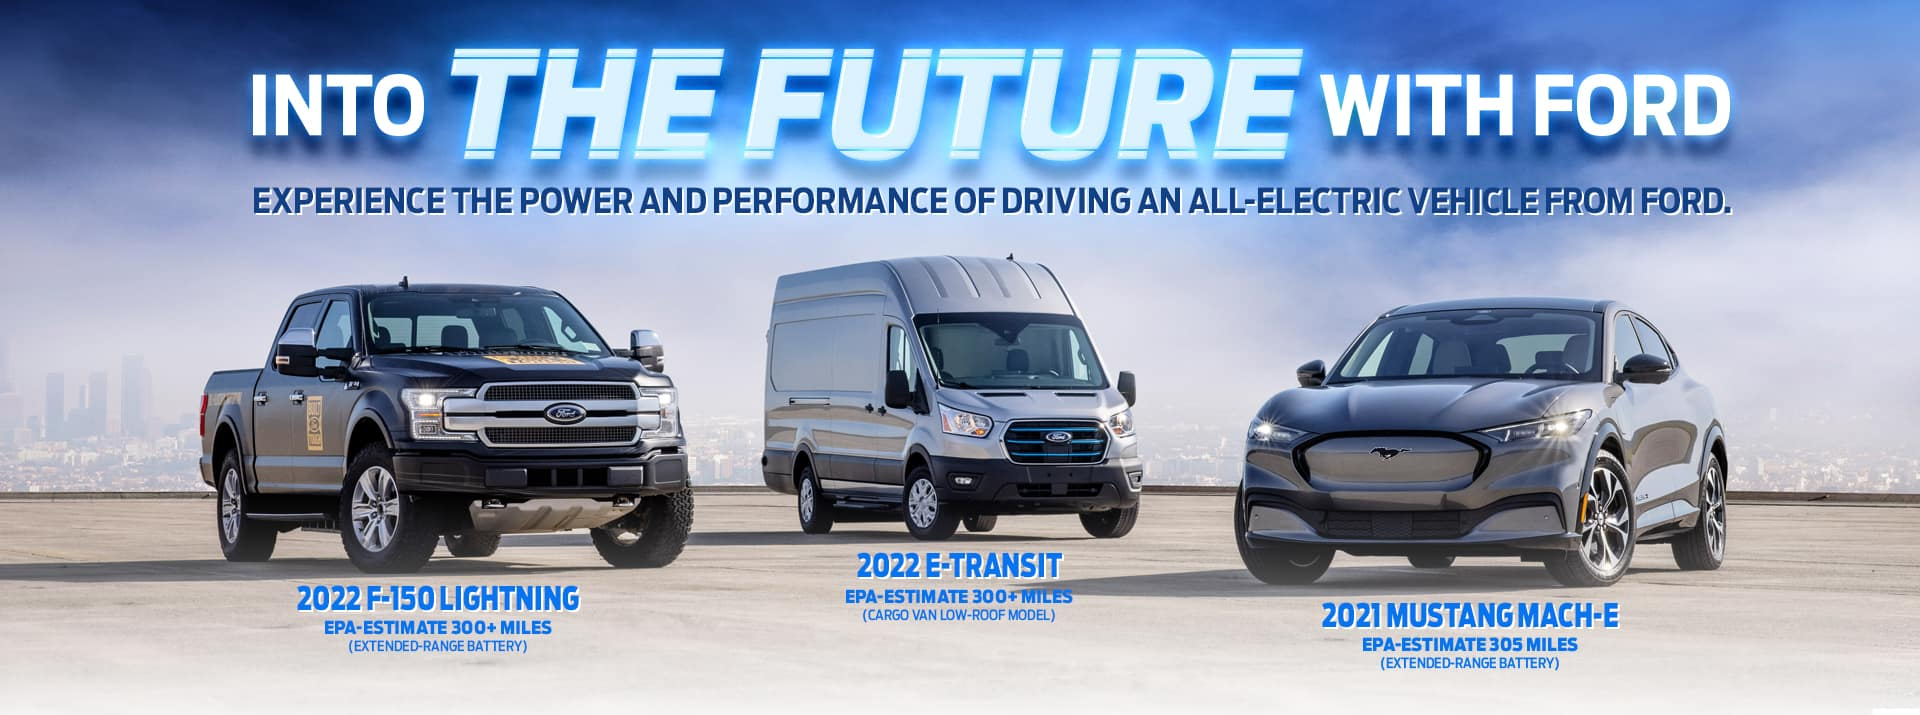 Ford EV Electric Vehicles_Ford Mustang Mach-E_Ford F-150 Lightning_Ford E-Transit